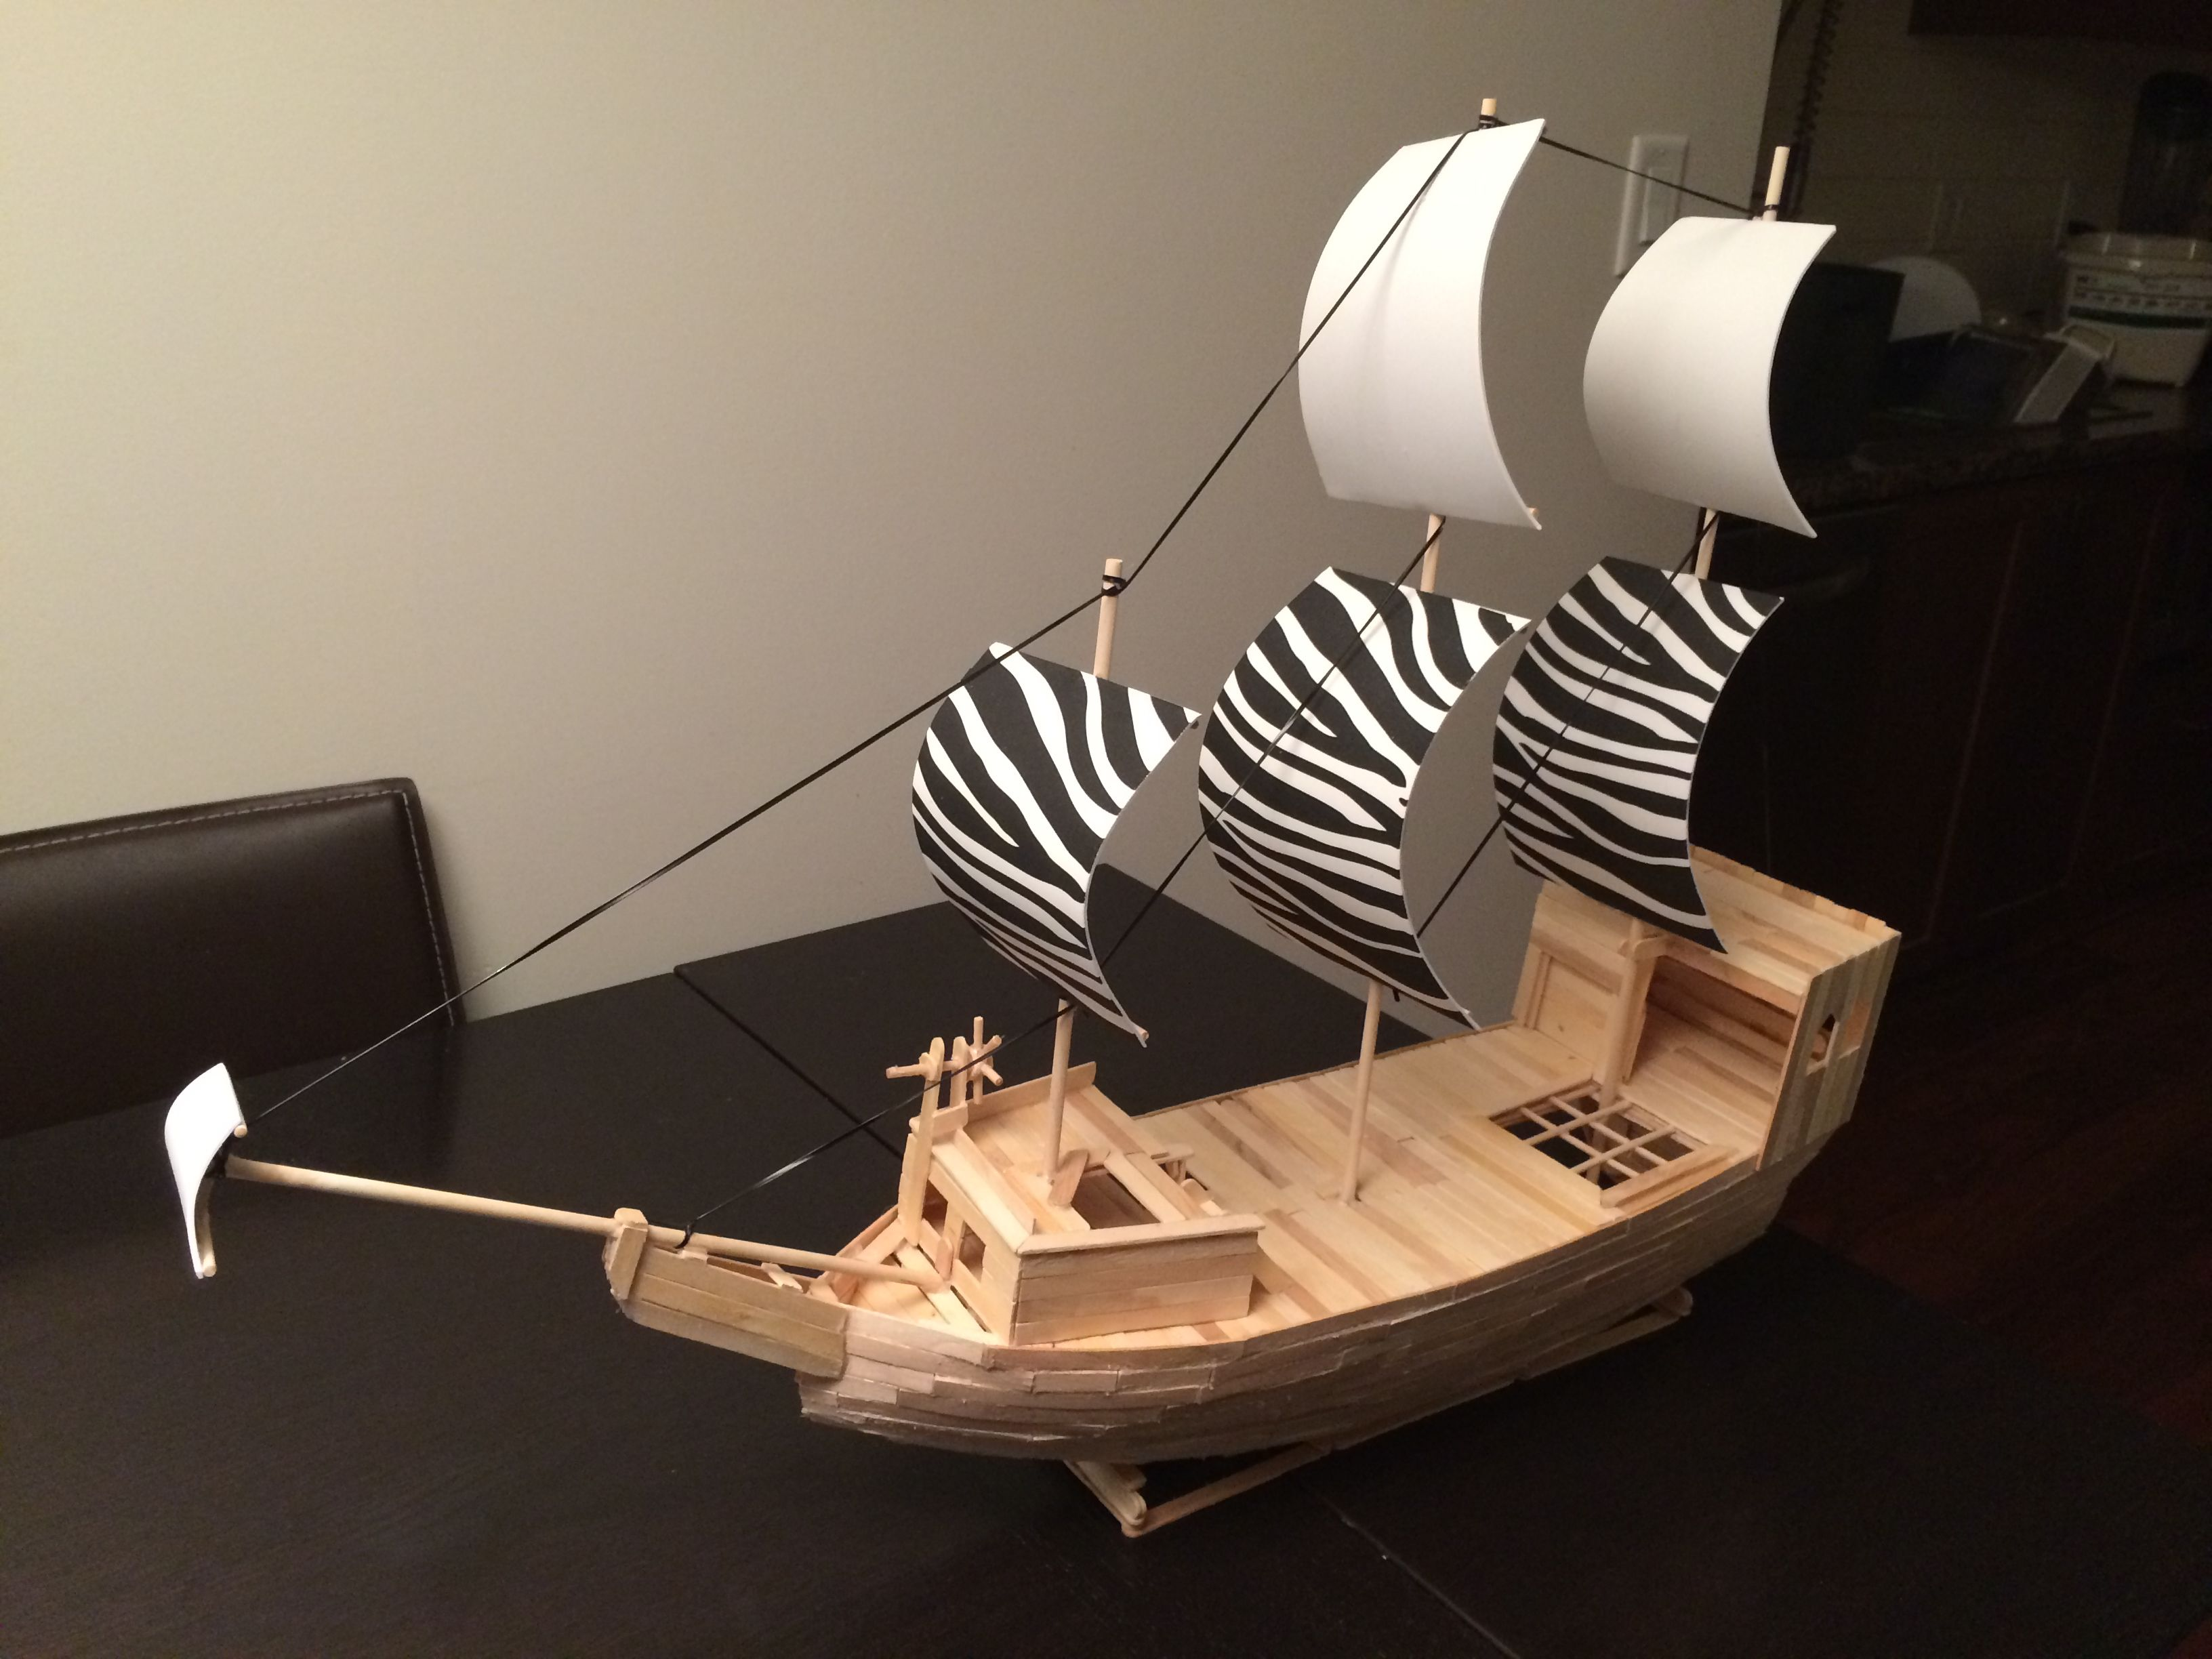 Pirate Ship Made Out Of Popsicle Sticks Wooden Dowels And